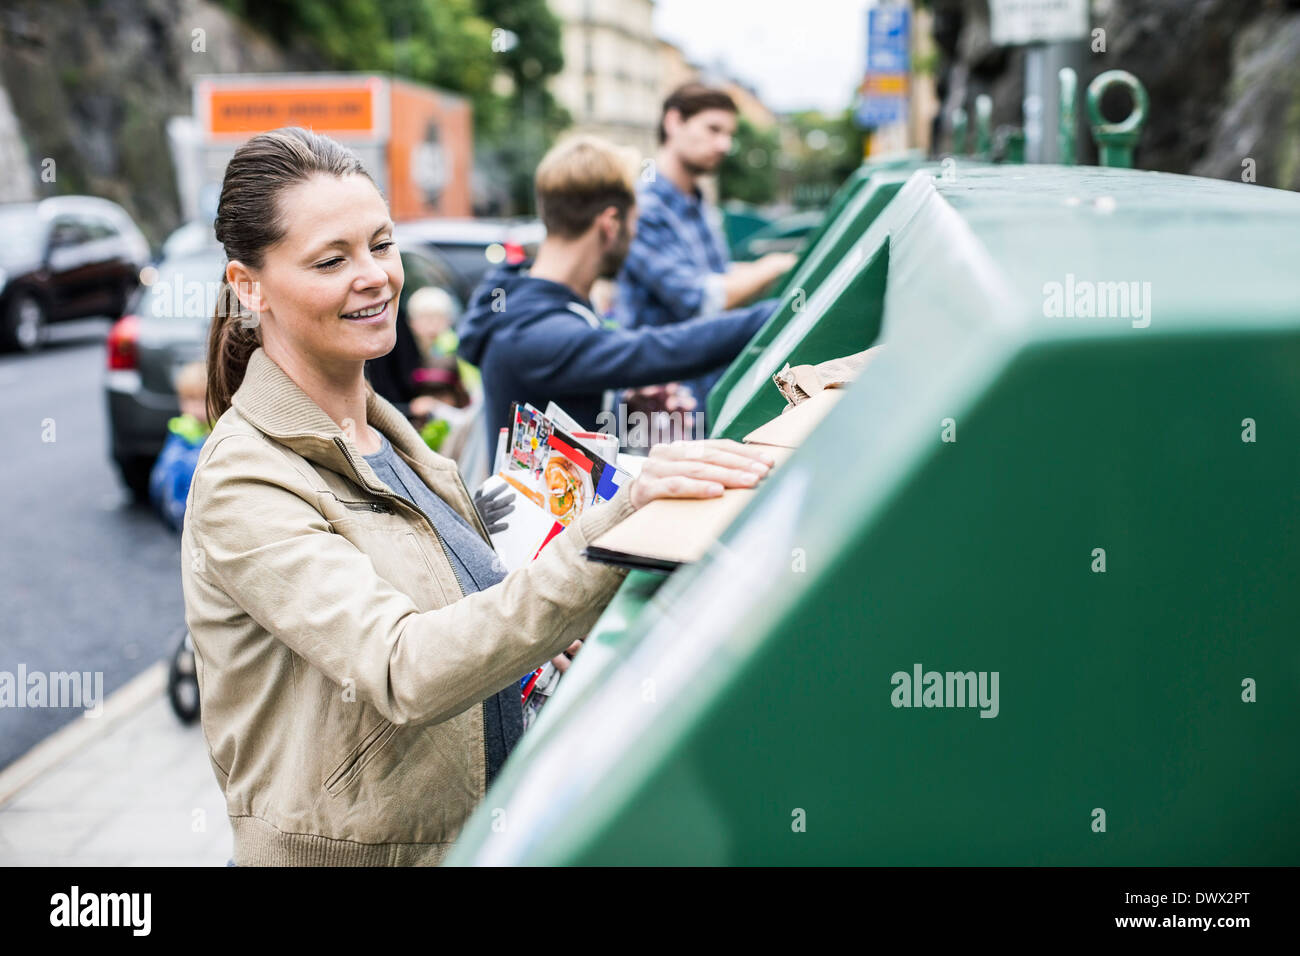 Woman and friends putting recyclable materials into recycling bins - Stock Image